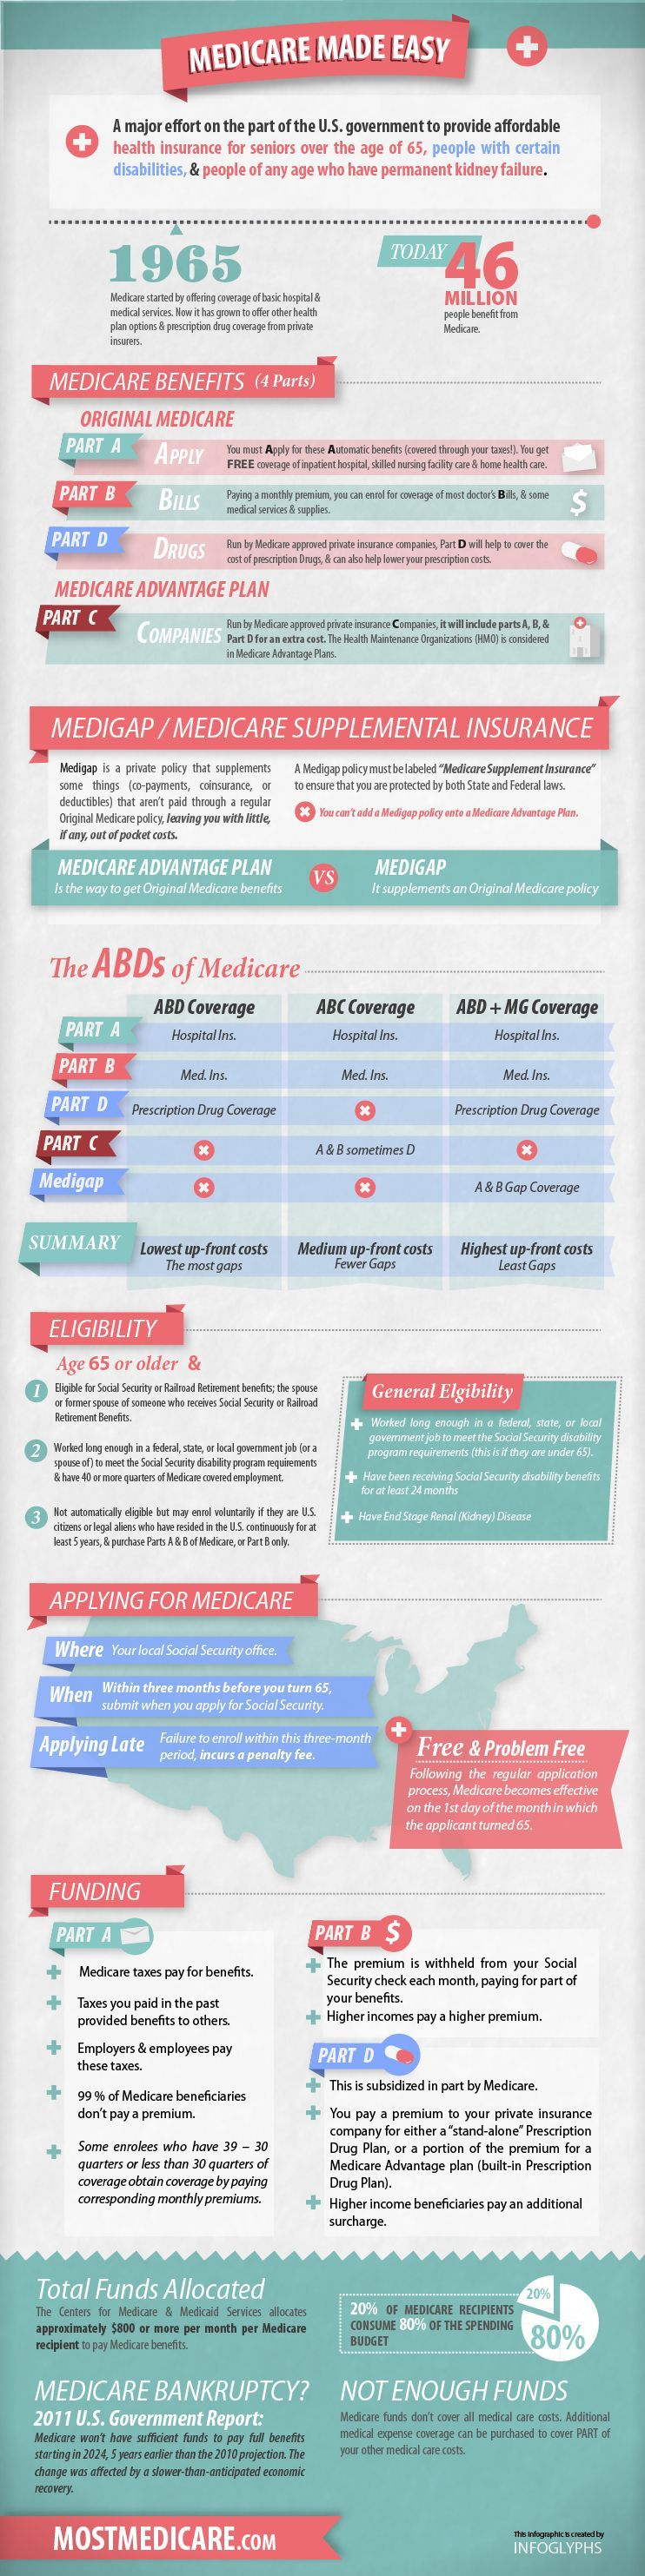 Medicare made easy source in 2020 health insurance